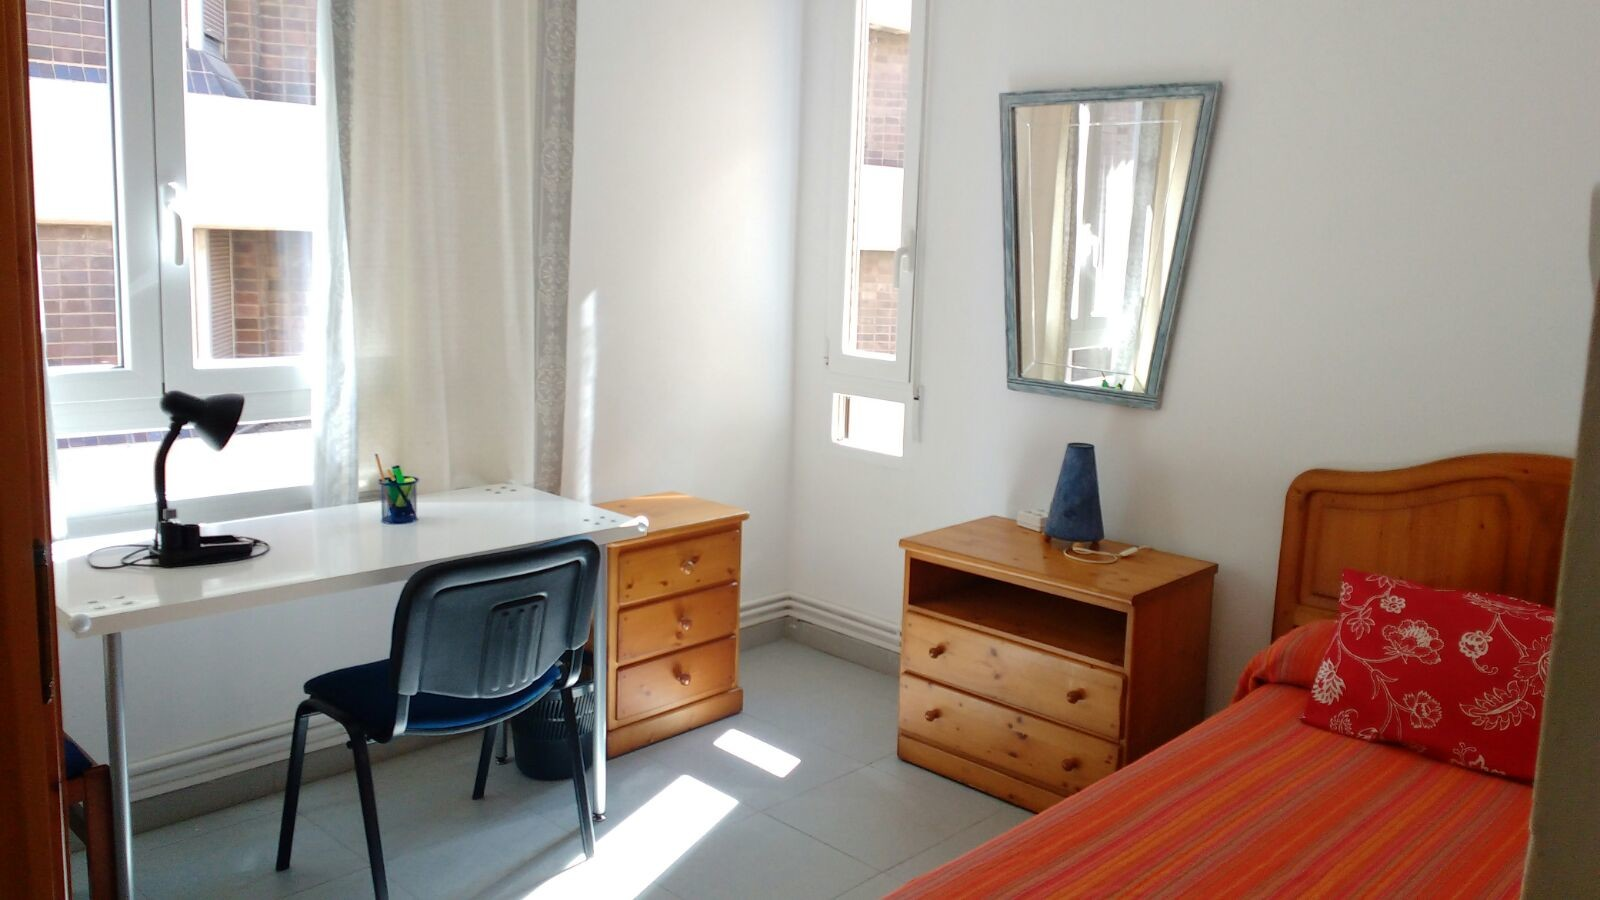 1-room-available-in-city-center-great-for-students-and-erasmus-a7a540bac348a0f51f55859aac429d4a